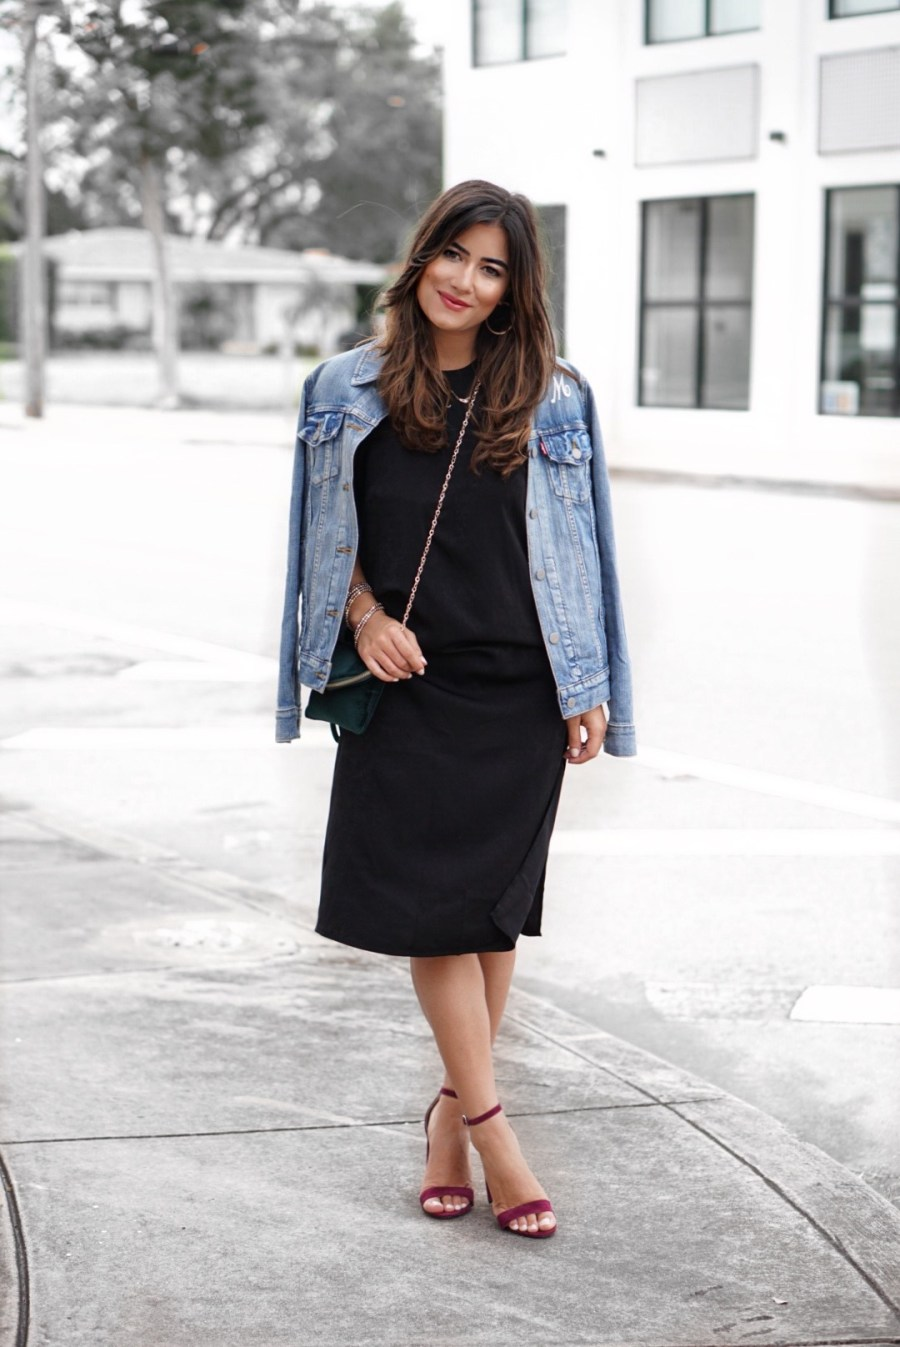 Simple Chic LBD Outfit